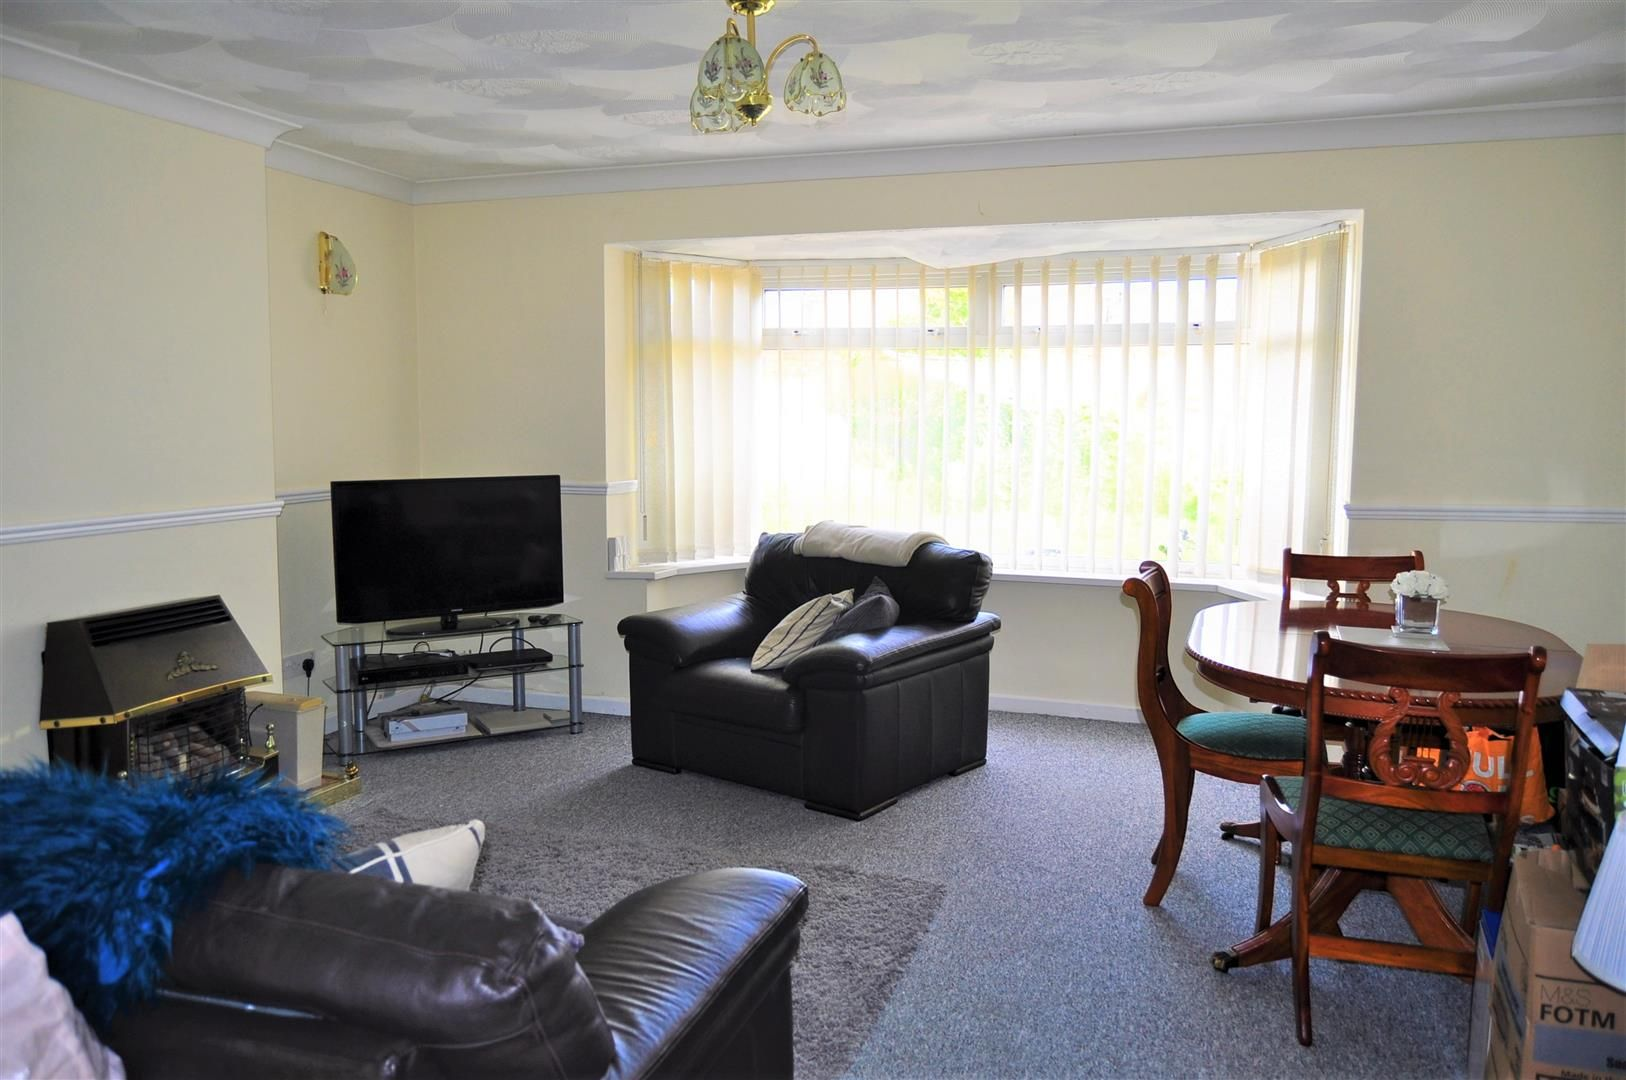 3 bed end-of-terrace for sale in Quinton  - Property Image 2